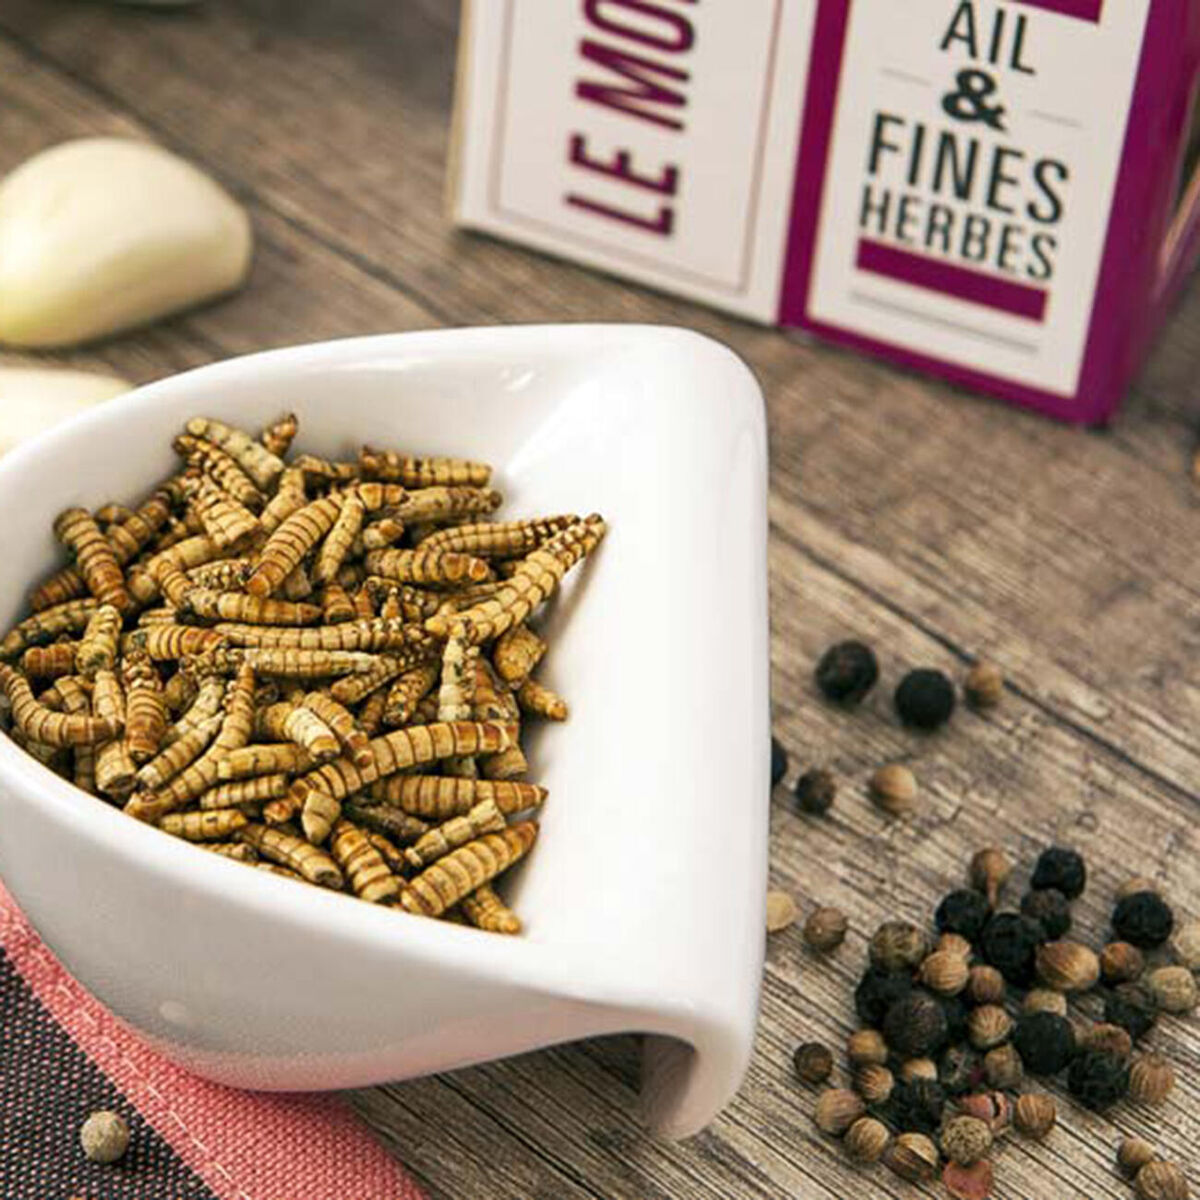 Kaufland Croatia <strong>introduces&nbsp;insect-based food range</strong>